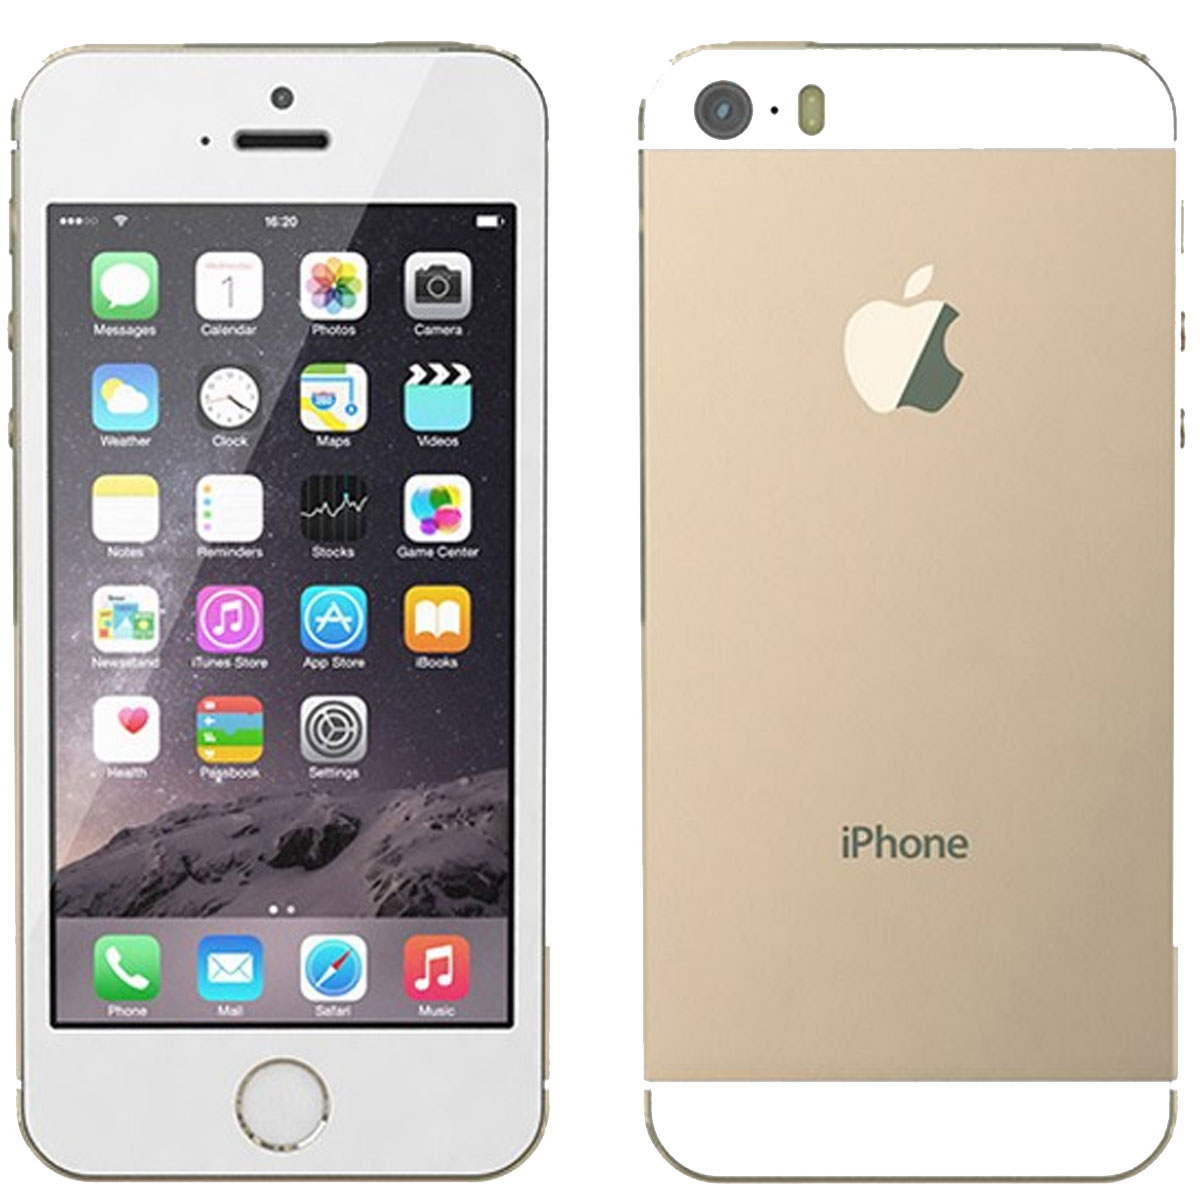 Apple iPhone 5s Price in Pakistan 2020 | PriceOye